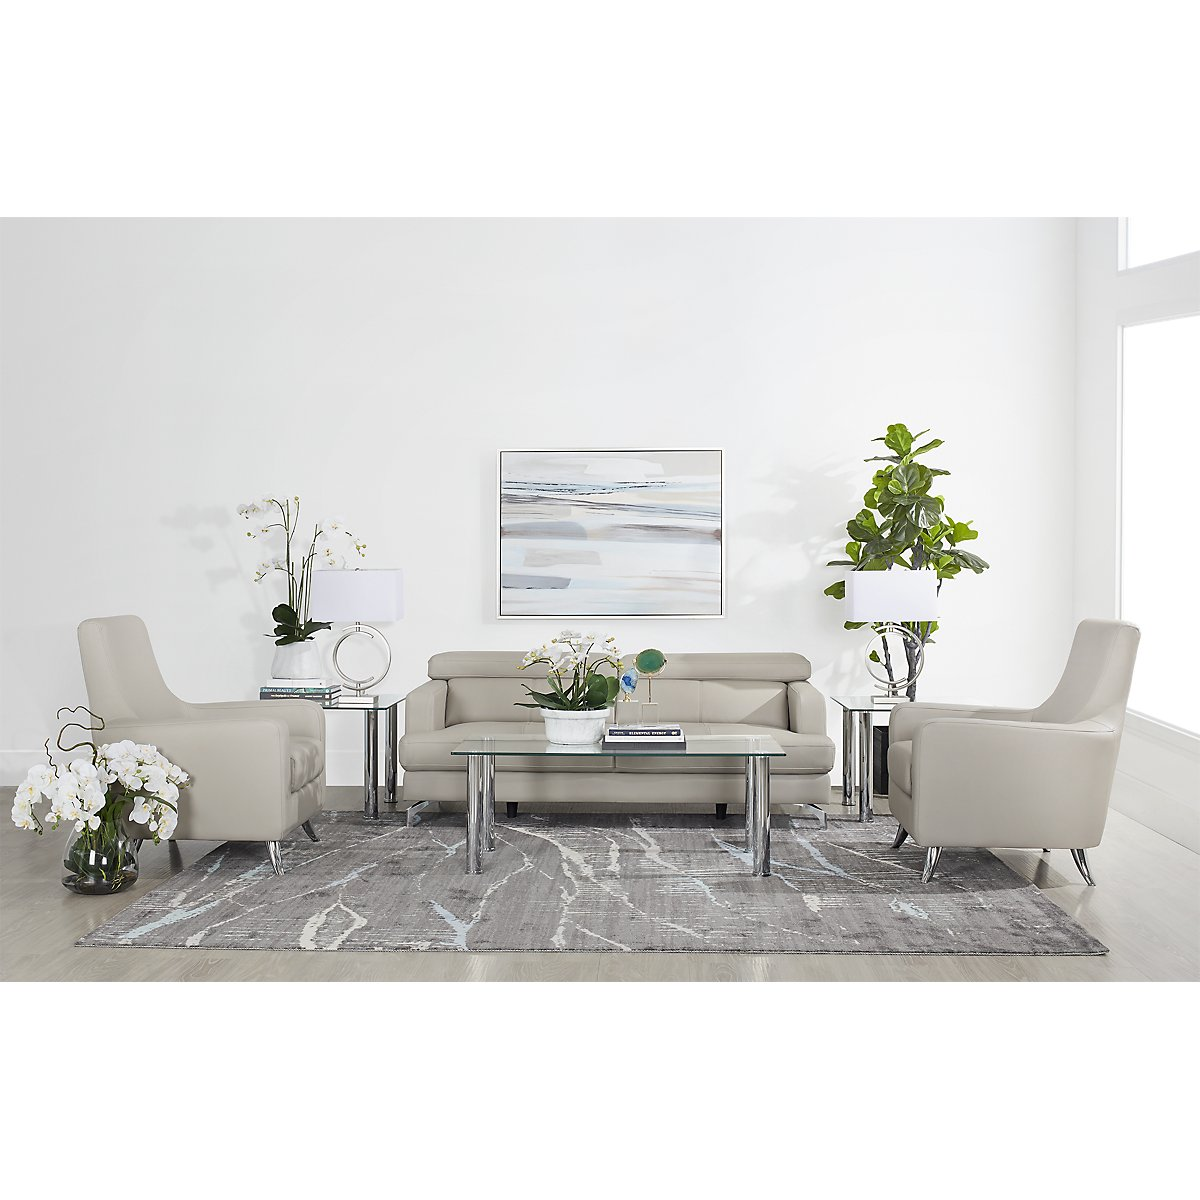 Napoli Glass Rectangular Coffee Table | Living Room Tables